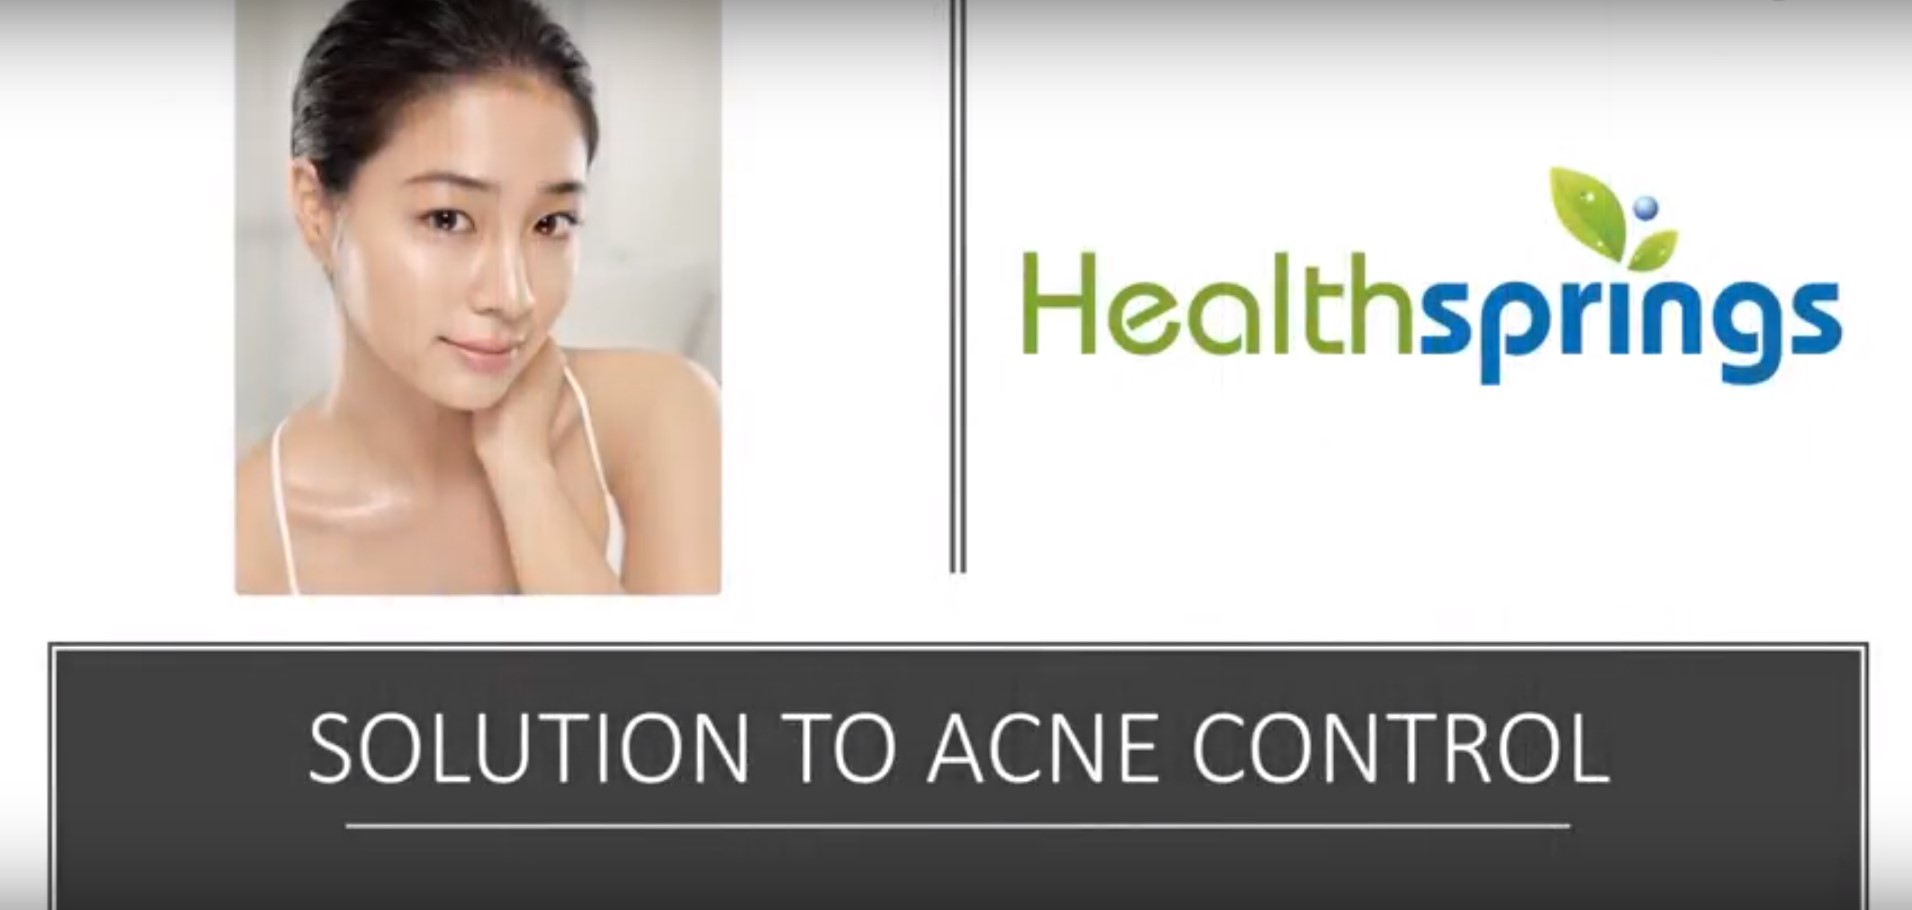 SOLUTION TO ACNE CONTROL